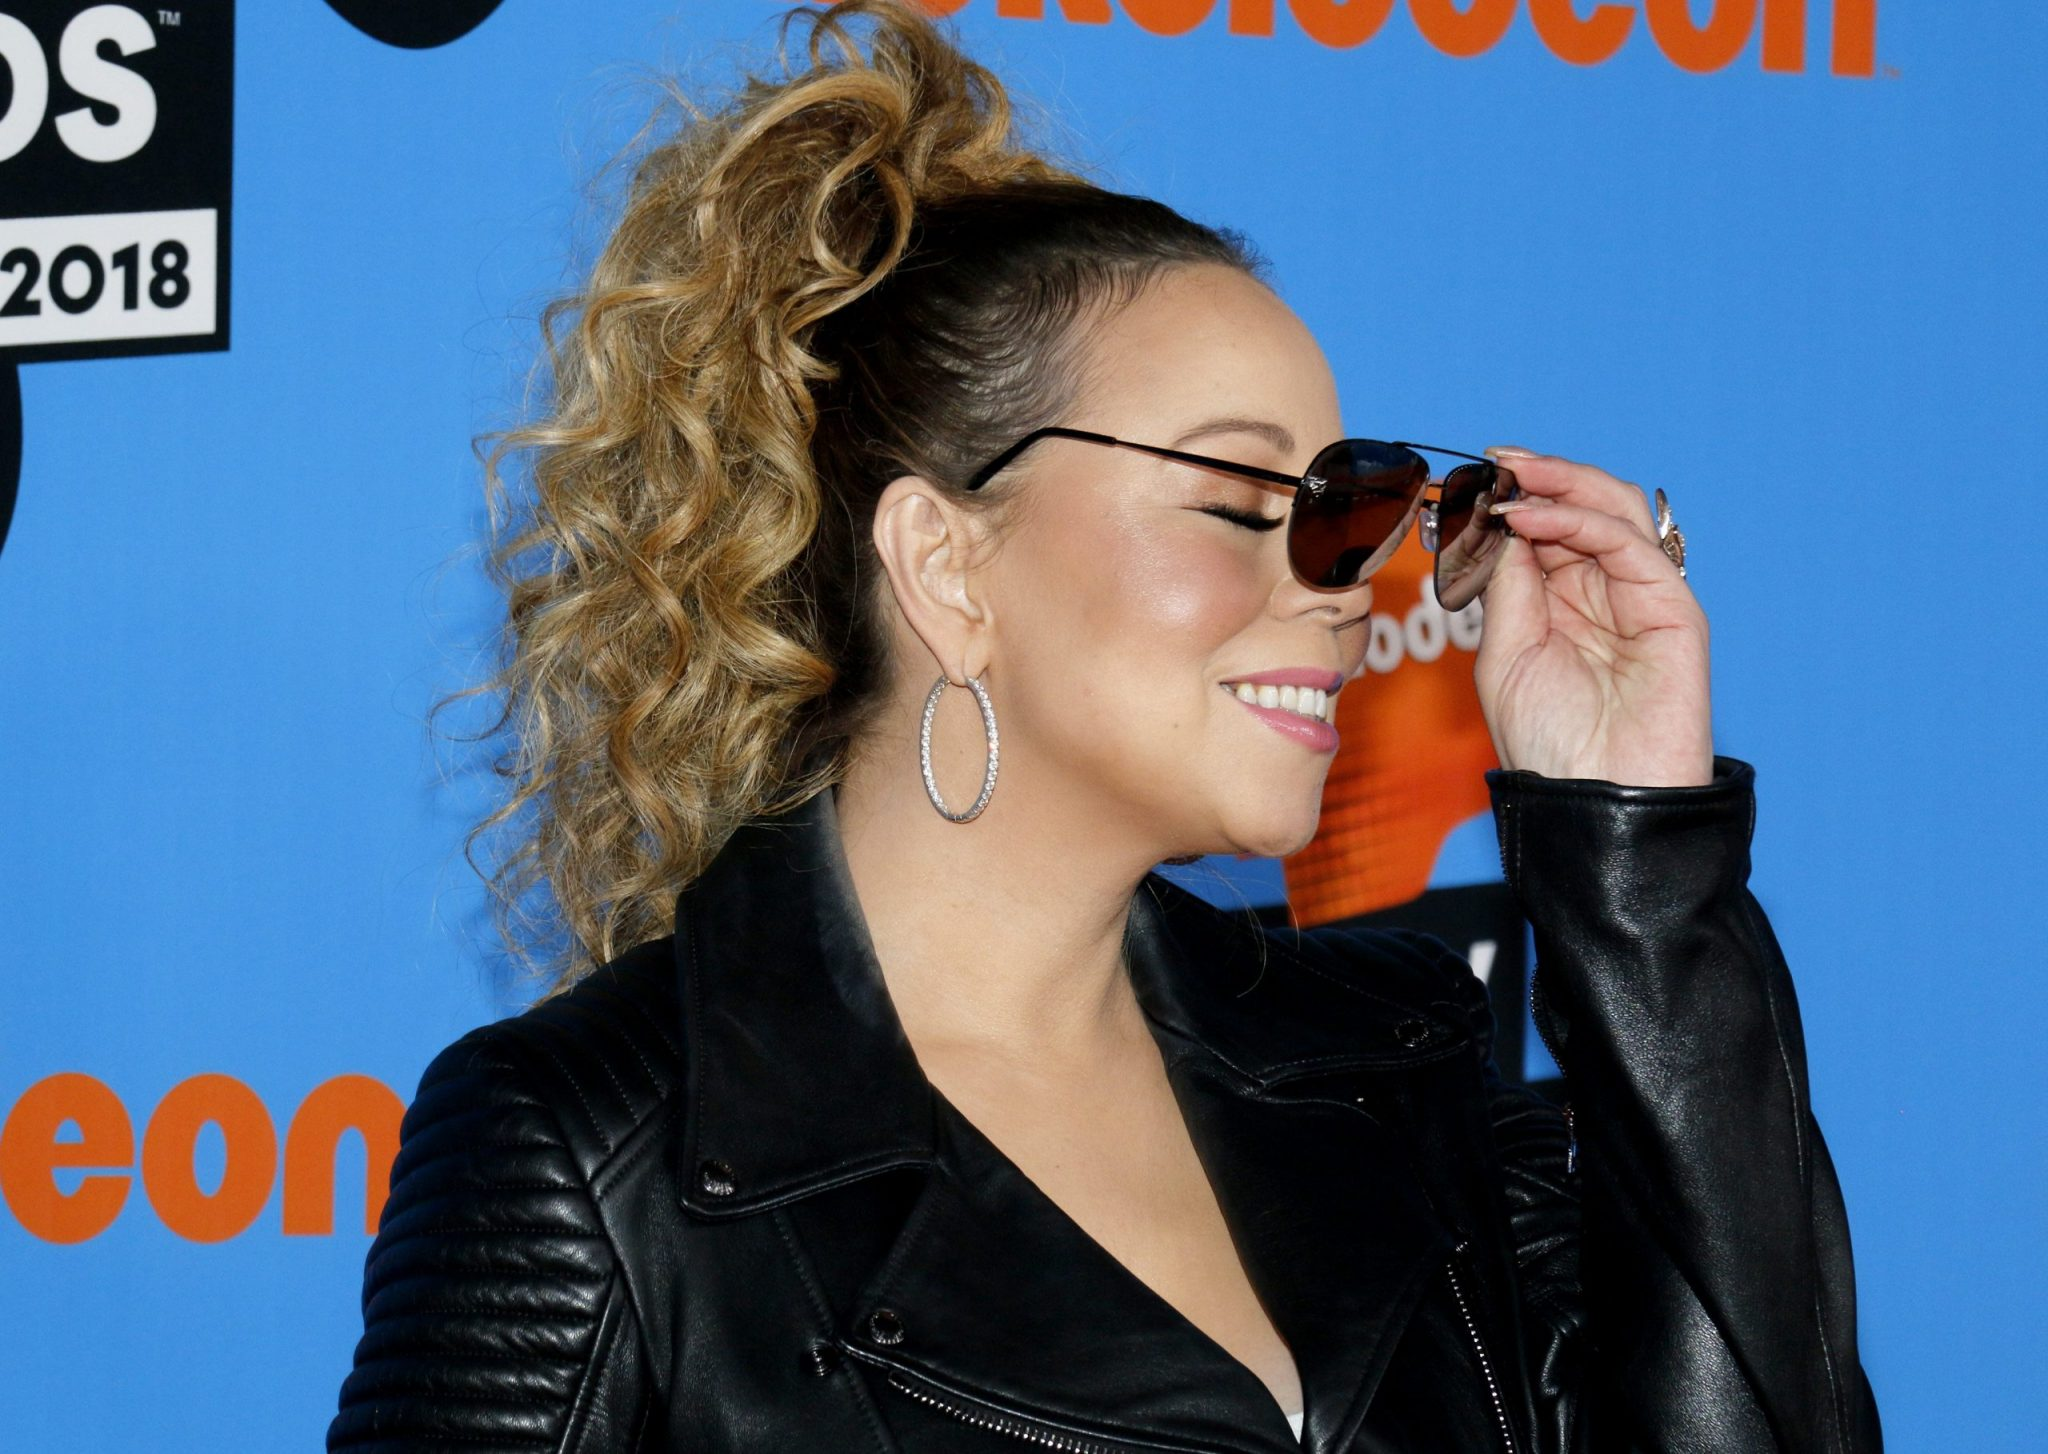 """Mariah Carey """"In a Good Place"""" with Bipolar Disorder After Years of Struggle"""